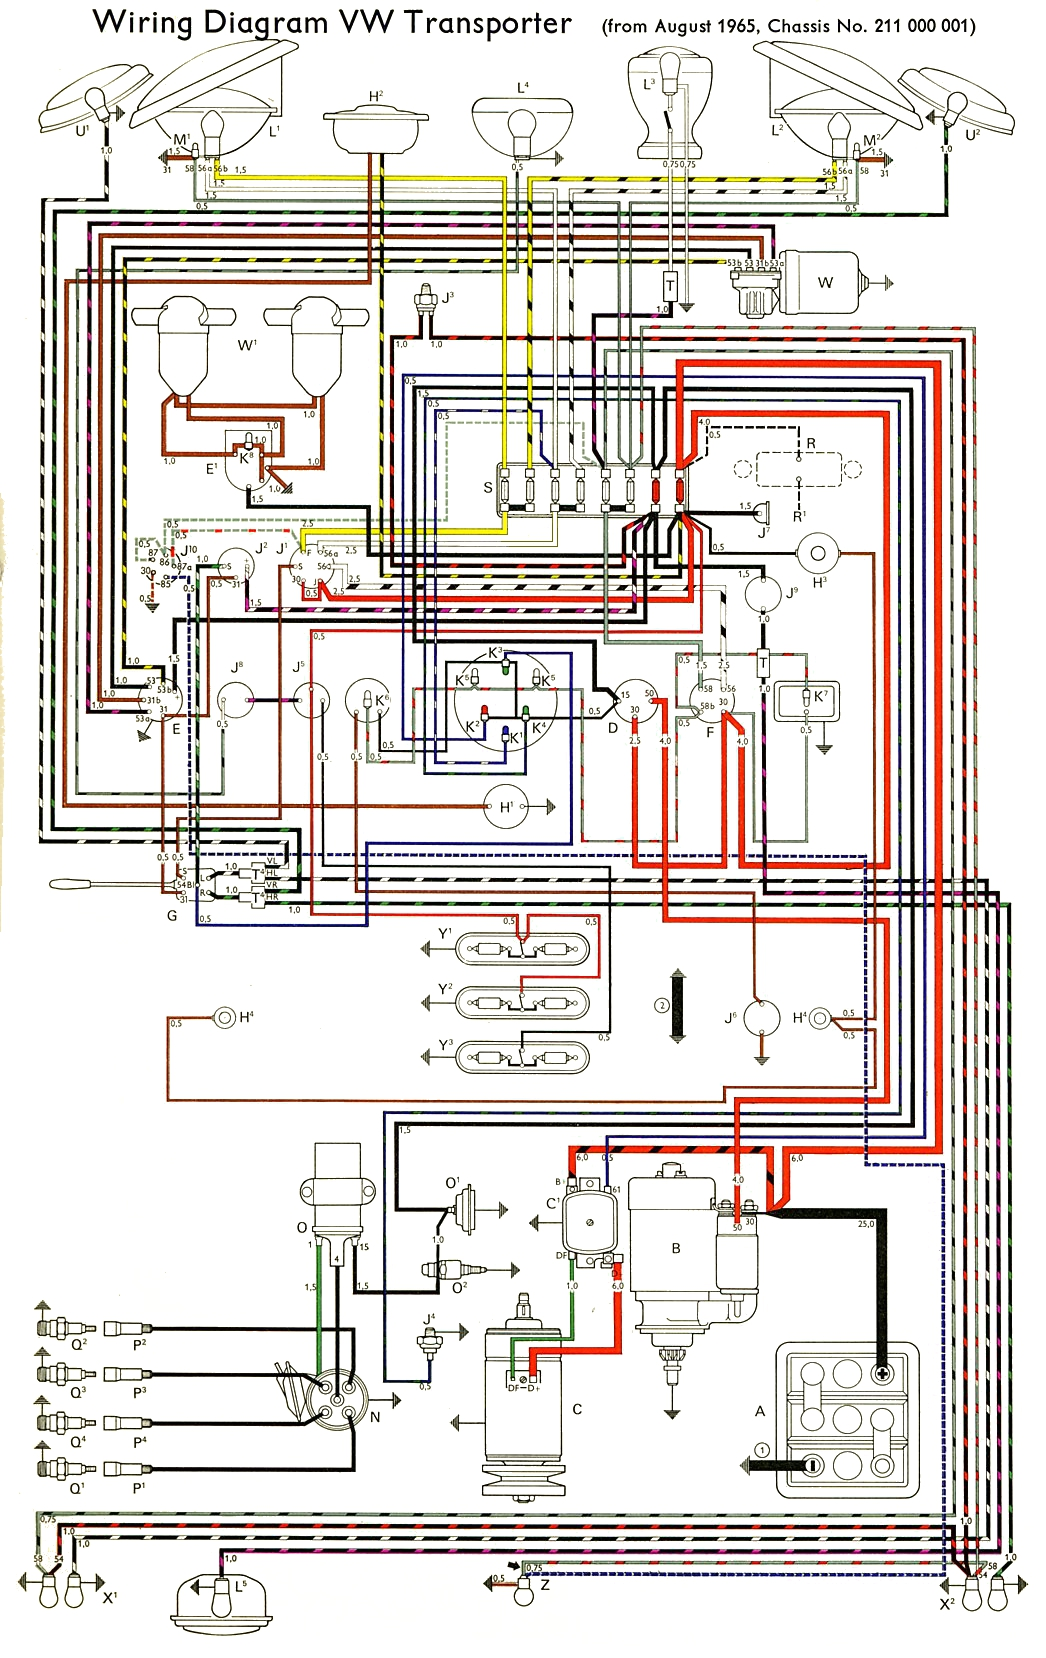 bus_66 thesamba com type 2 wiring diagrams vw t4 wiring diagram pdf at nearapp.co